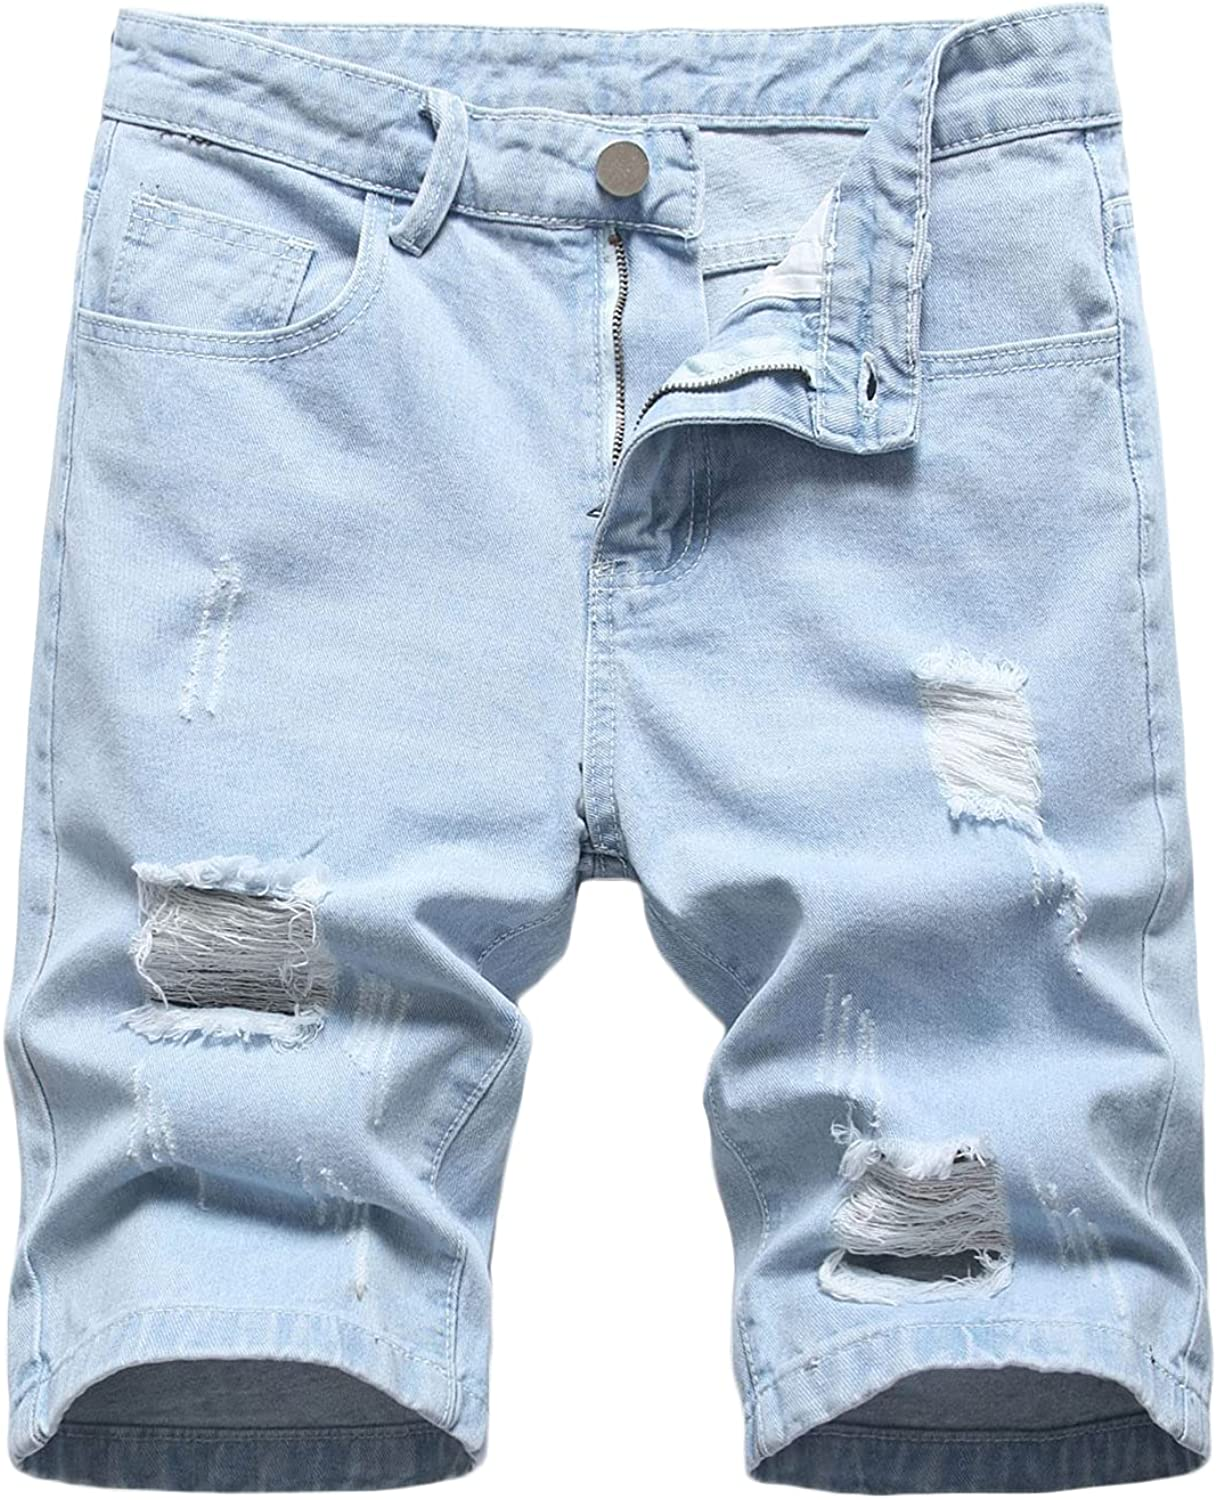 Men's Selling and selling Destroyed Straight Leg Jean Washed Ripped Broken De Shorts Special price for a limited time